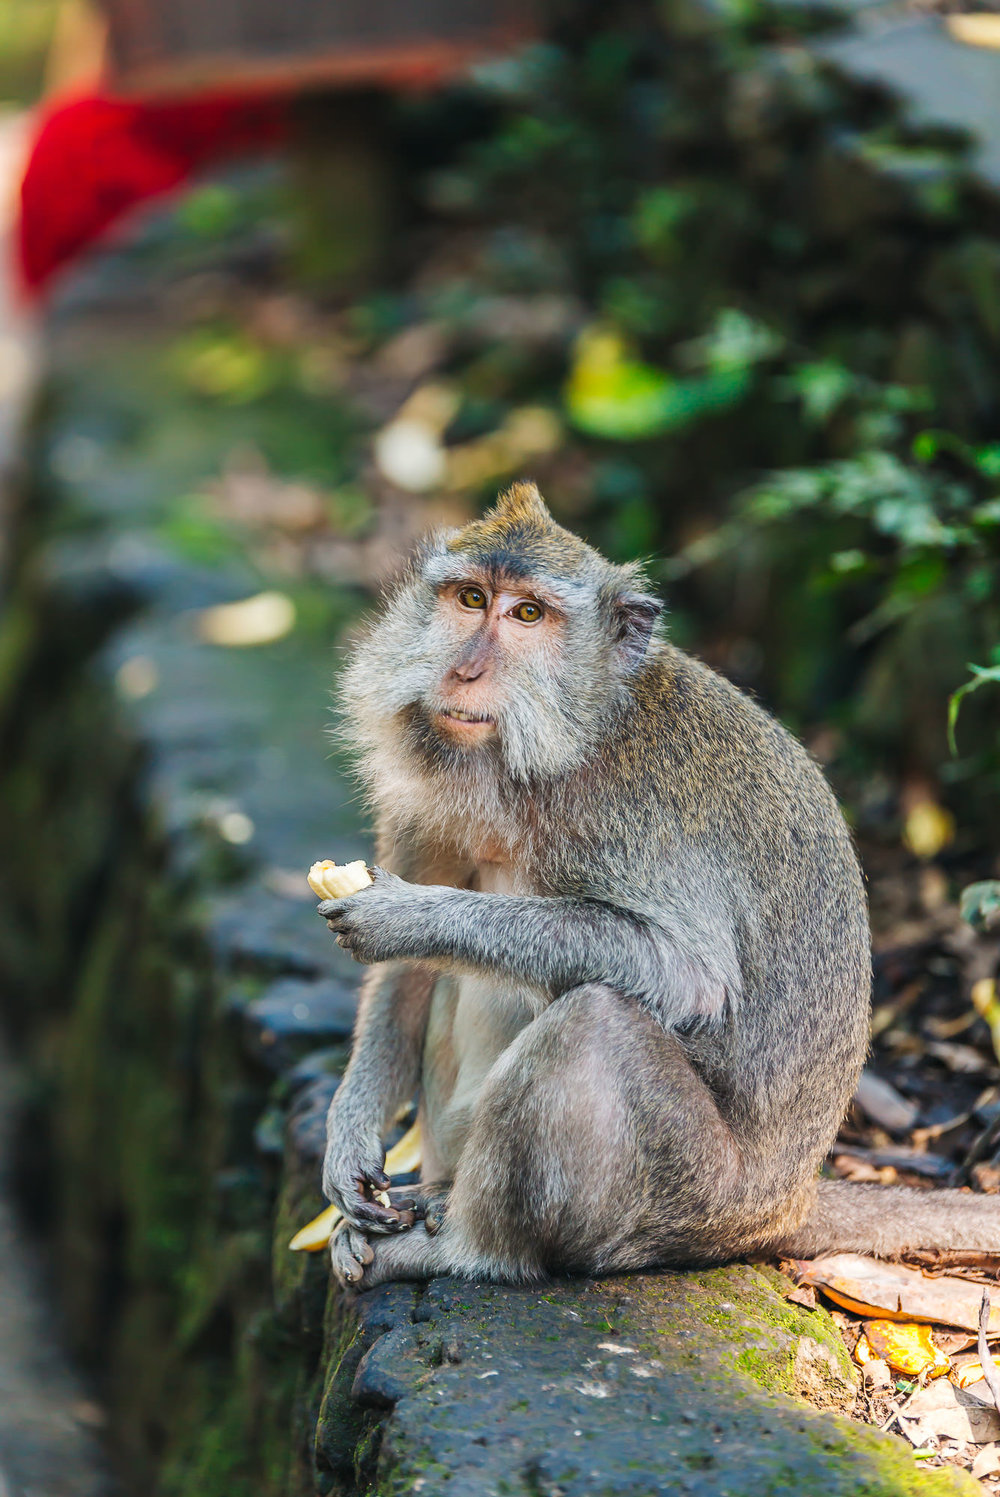 Shot the   Balinese monkeys   from afar with the   70-200mm lens